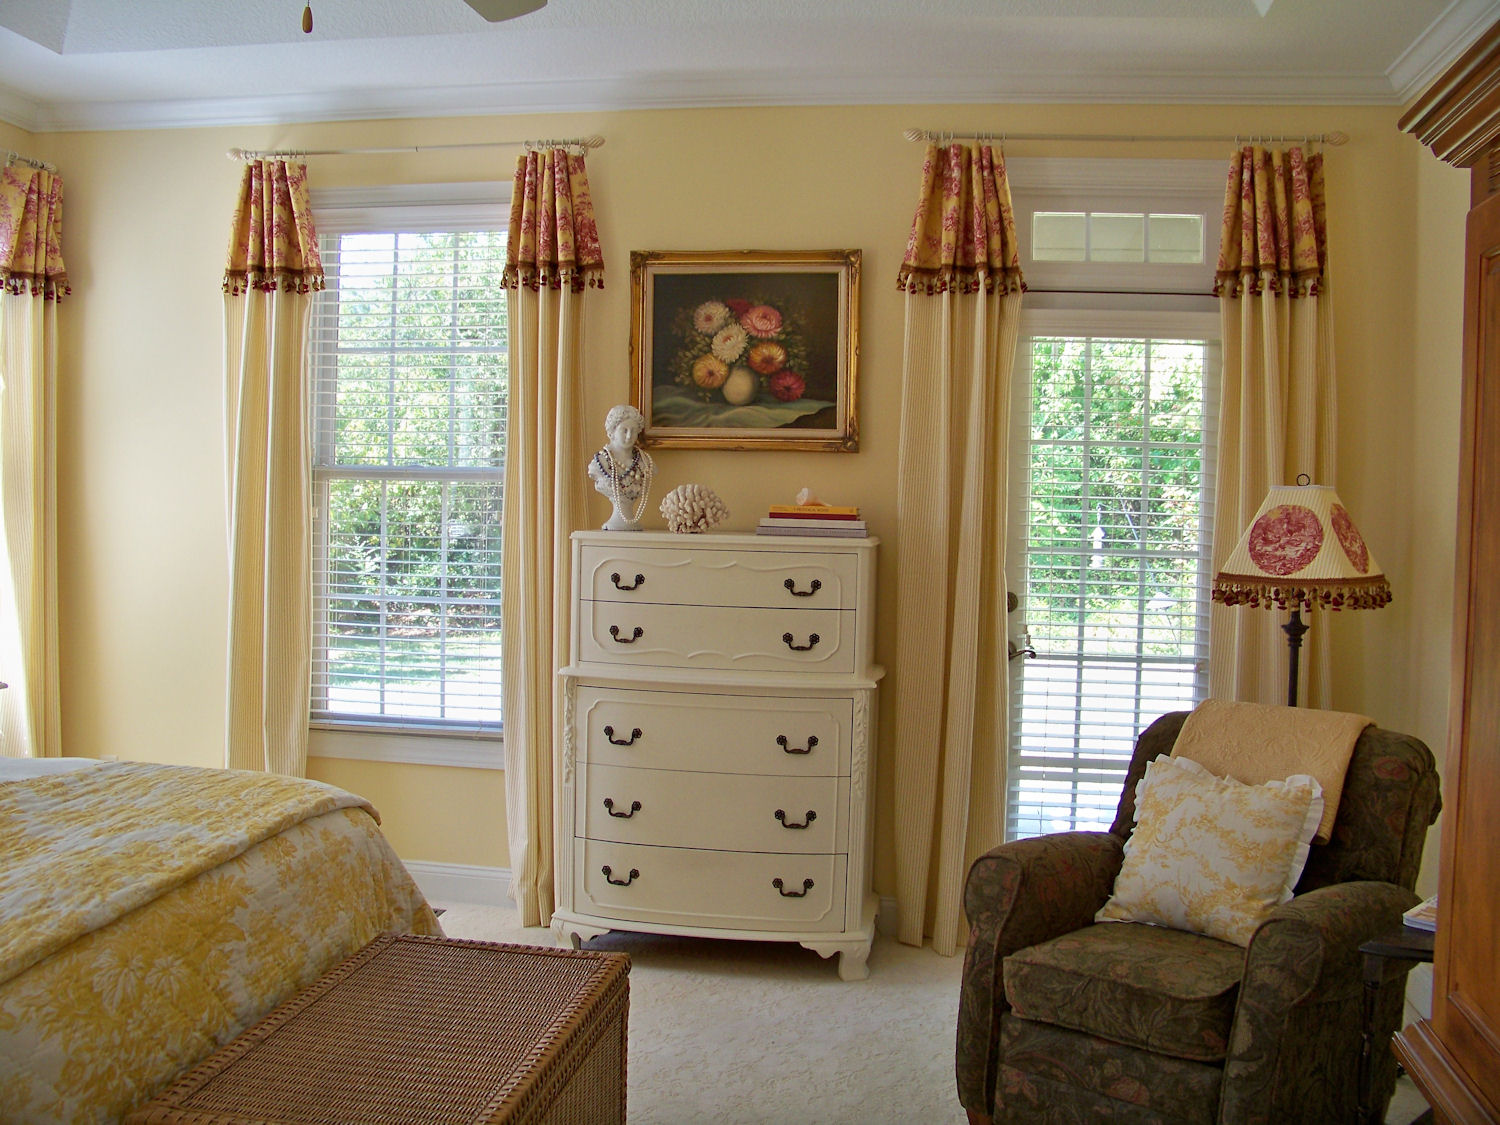 The comforts of home master bedroom curtain reveal - Curtains in bedroom ...